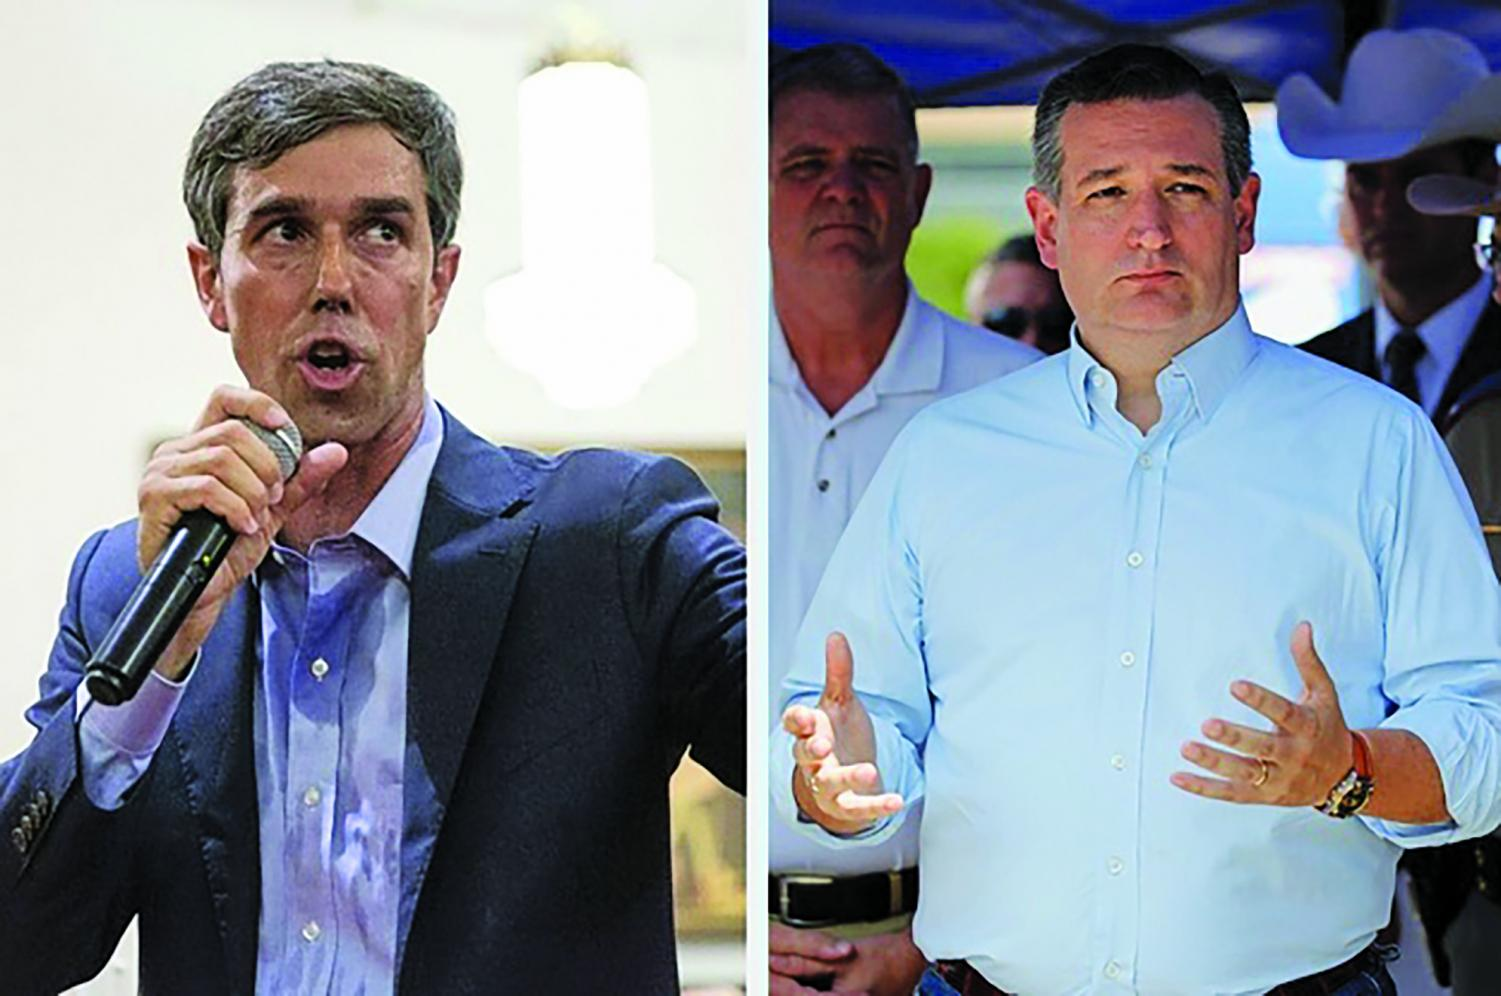 Cruz and O'Rourke will have three debates leading up to the November 8 election.